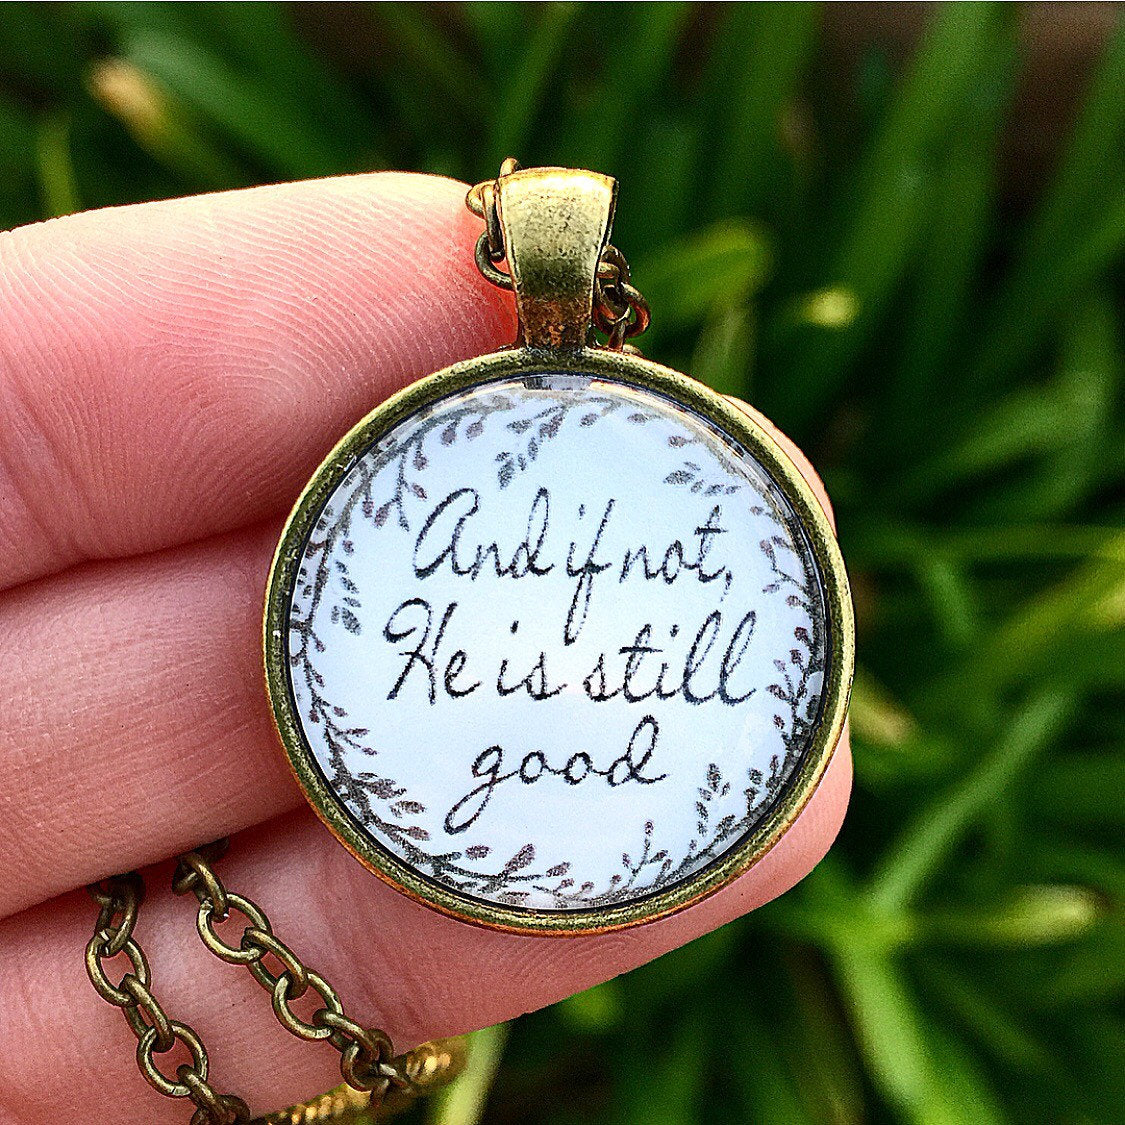 "Bible Verse Pendant Necklace ""And if not, He is still good"" - Redeemed Jewelry"